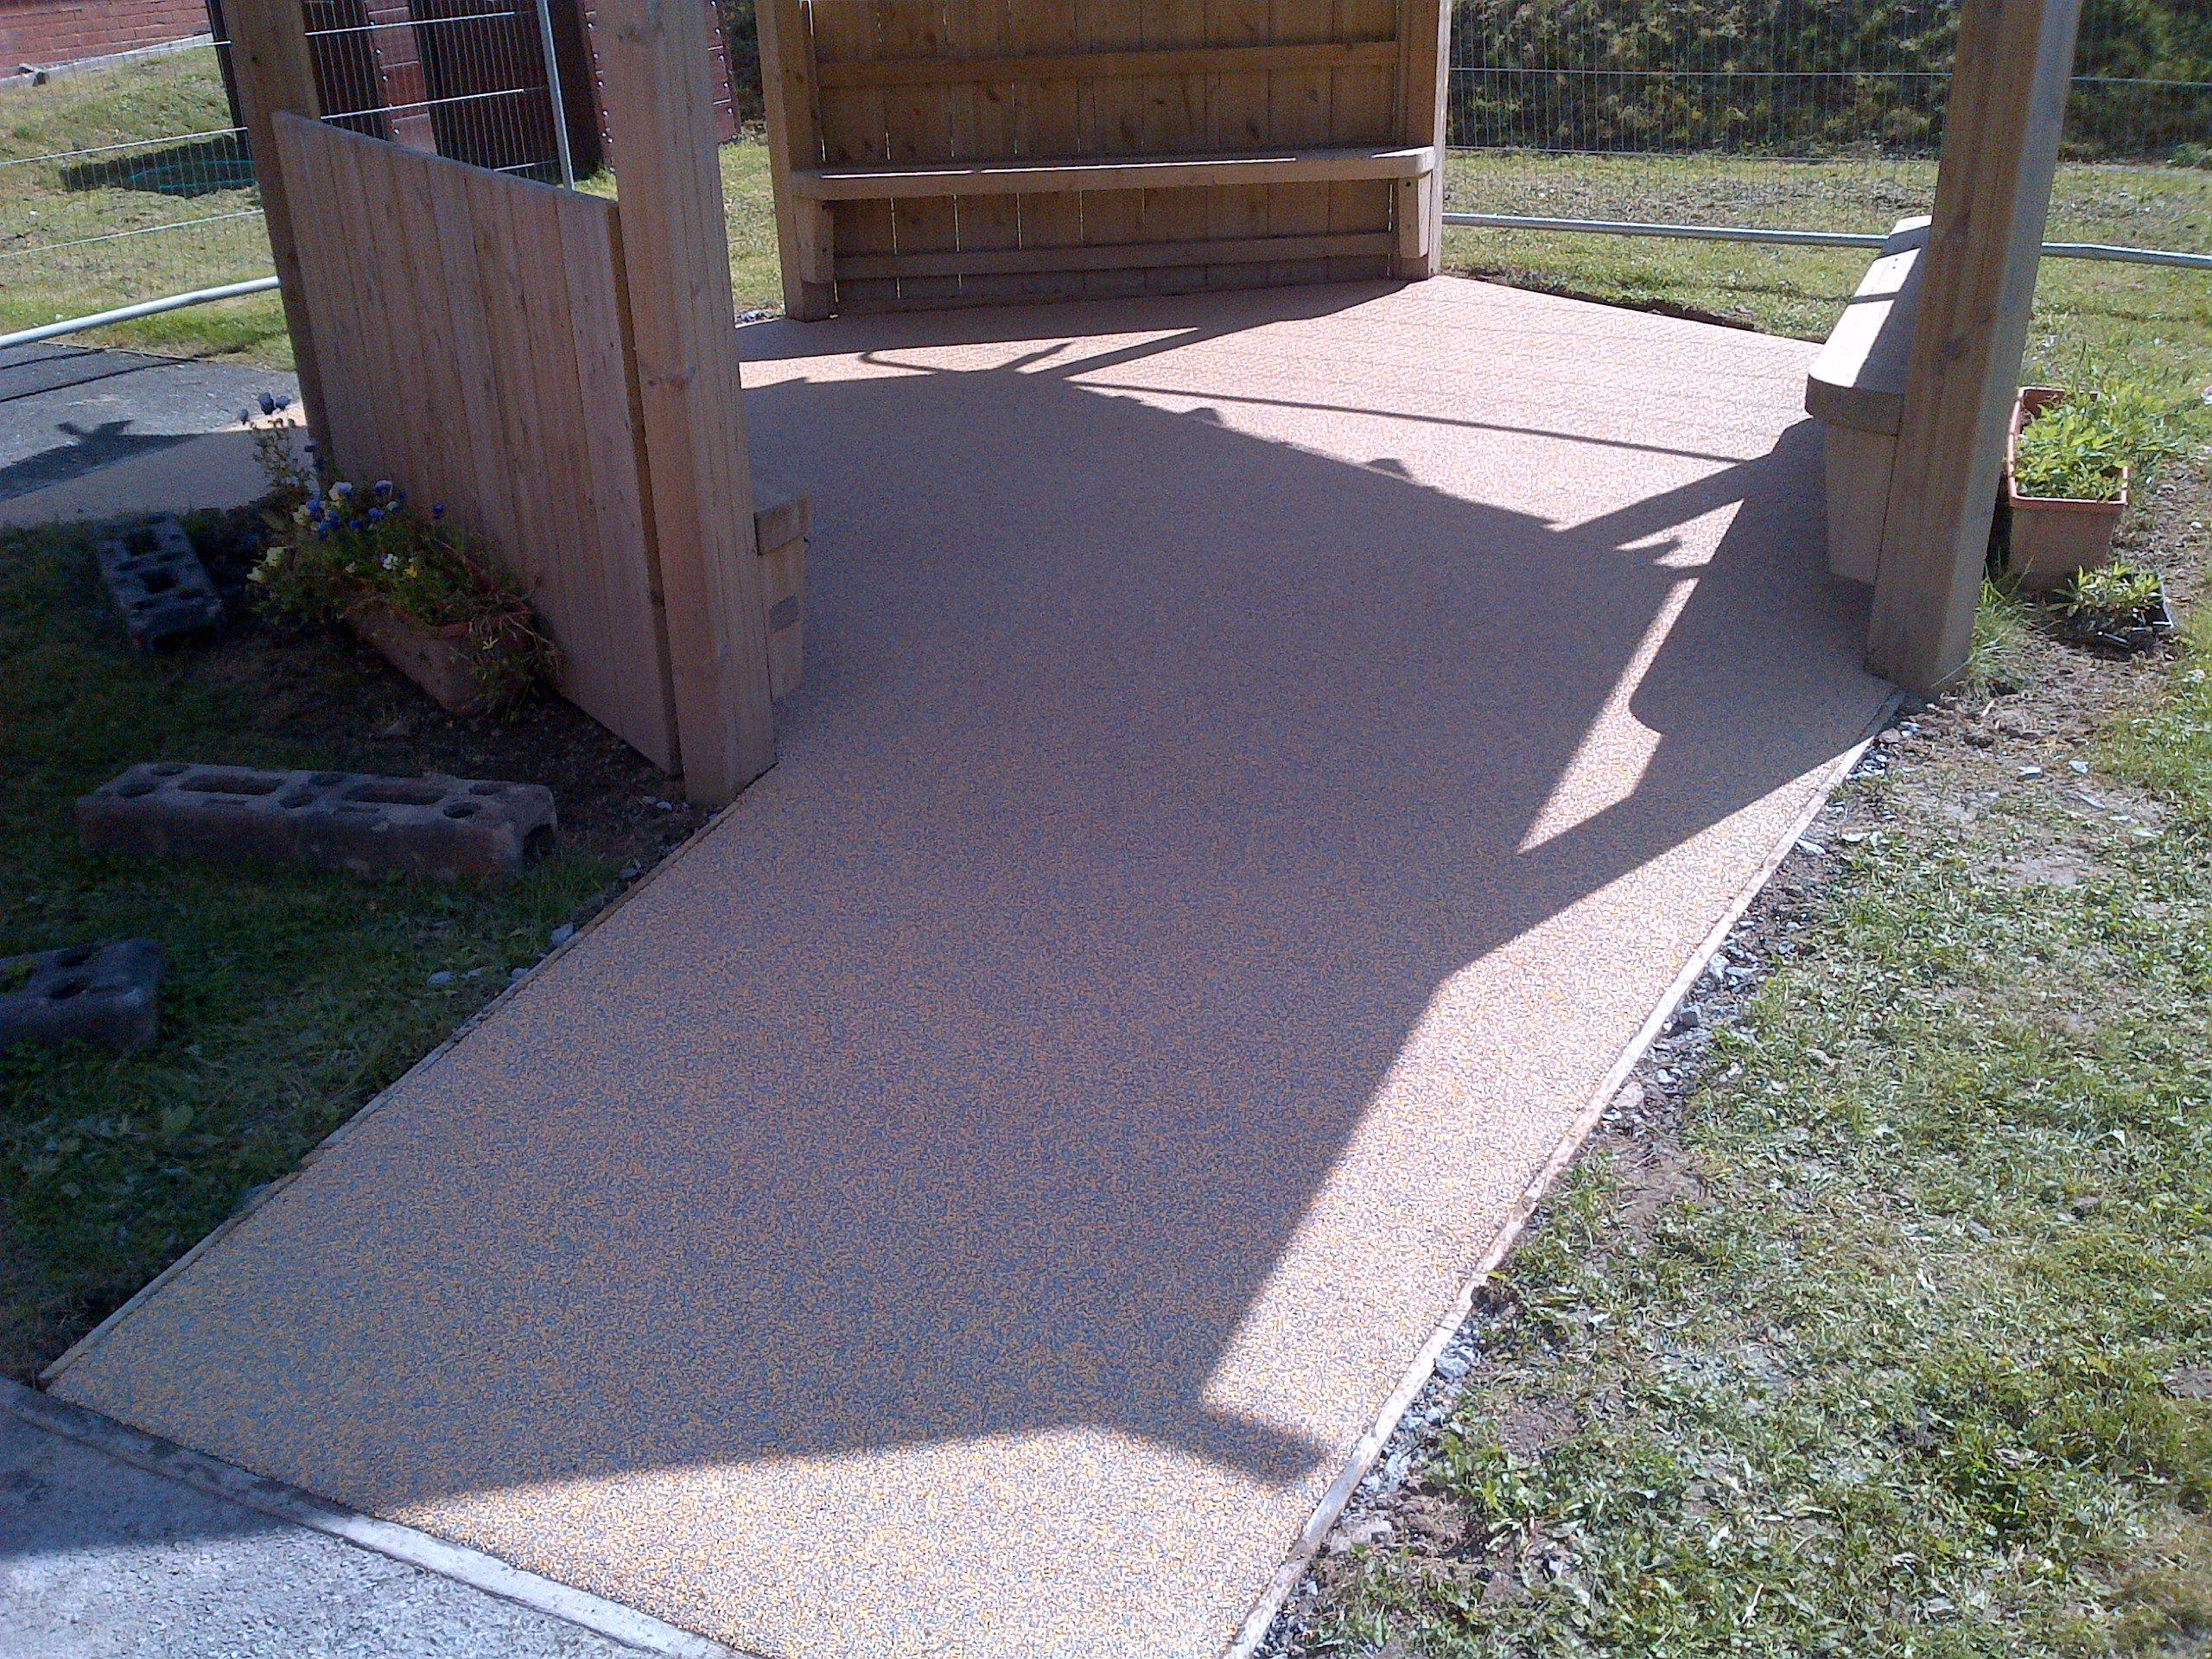 17m² 50% beige and 50% grey wetpour in Devon